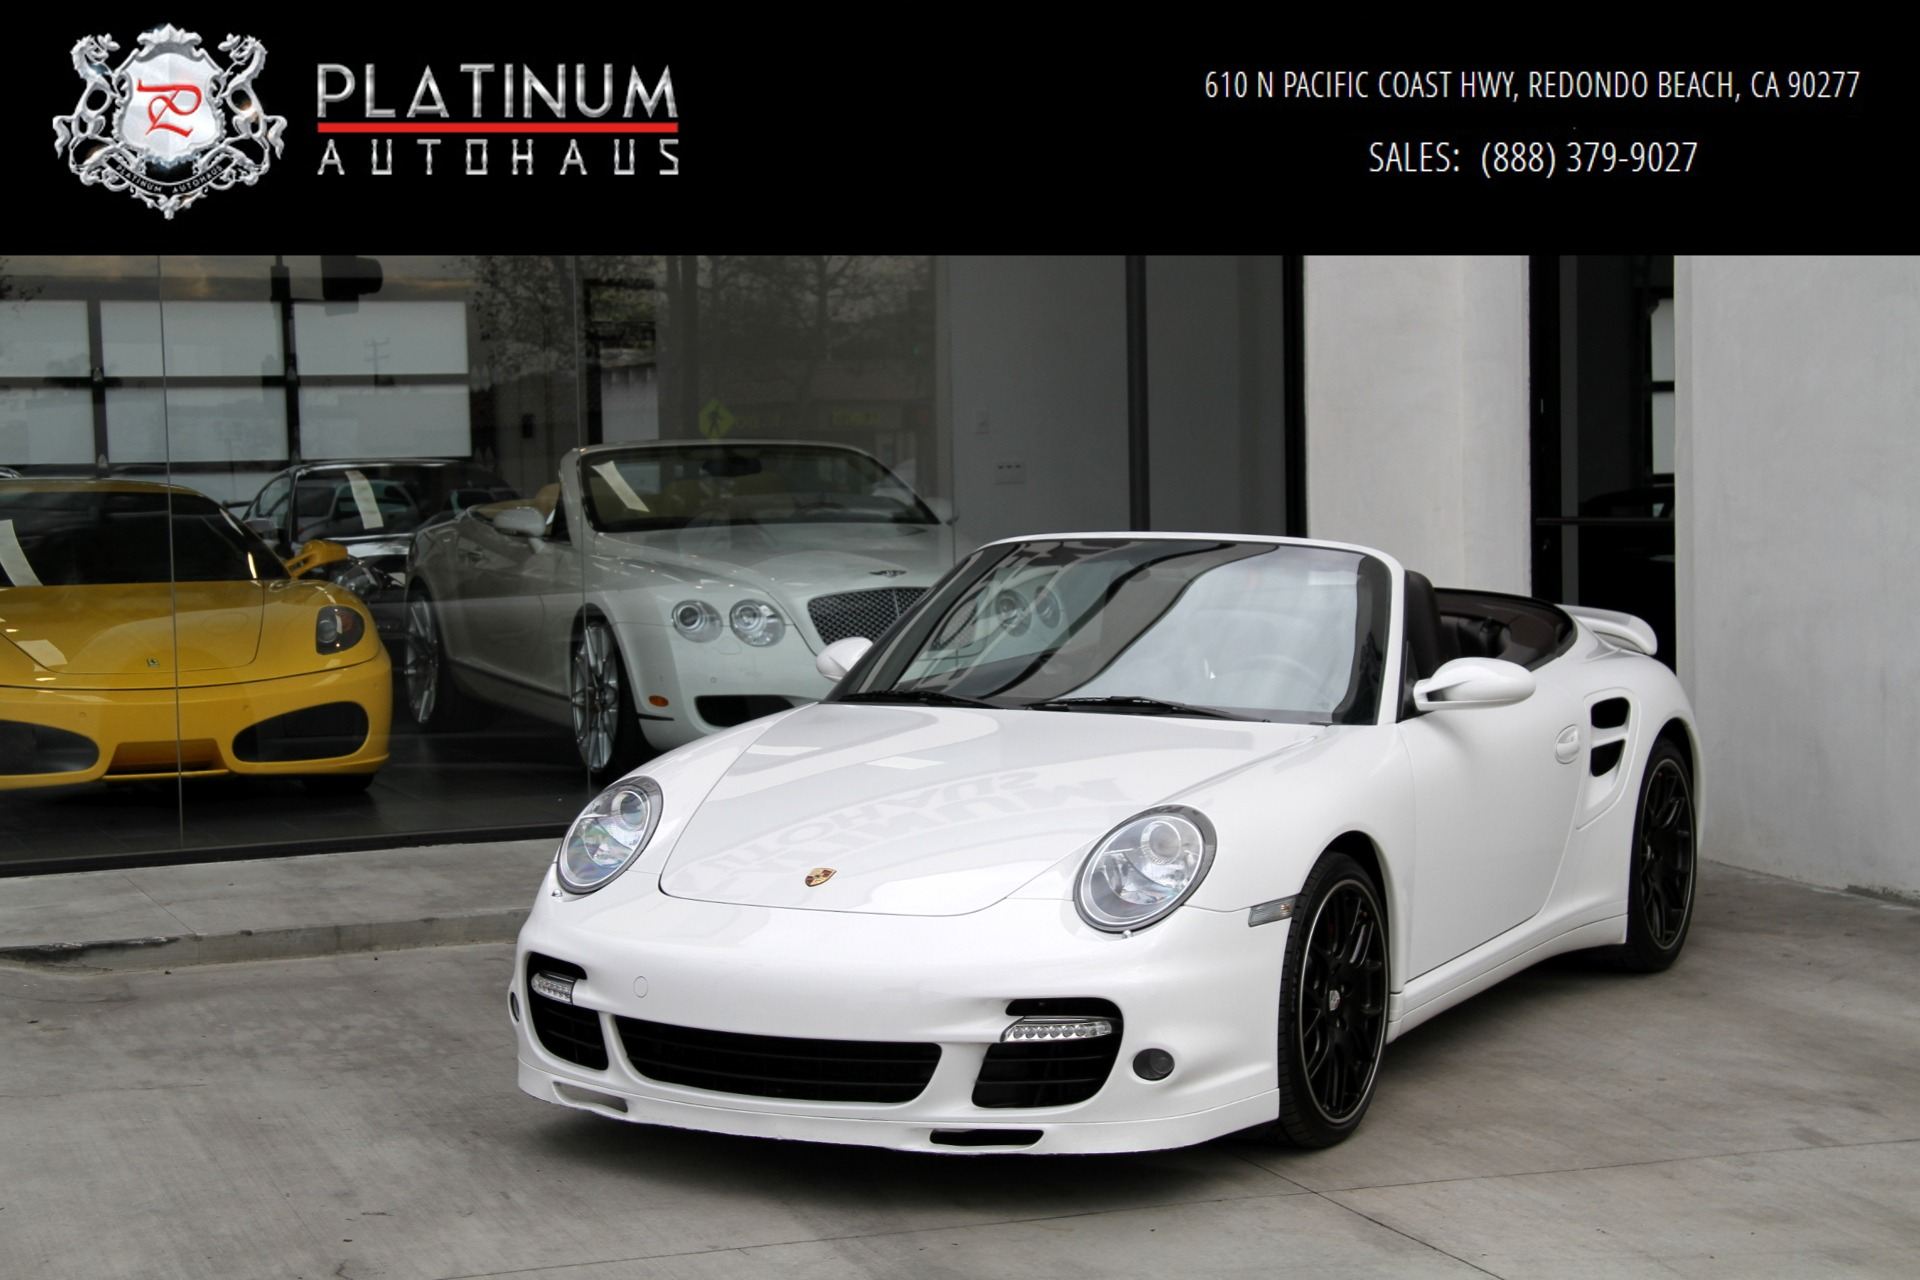 2008 porsche 911 turbo stock 788411 for sale near redondo beach ca ca porsche dealer. Black Bedroom Furniture Sets. Home Design Ideas